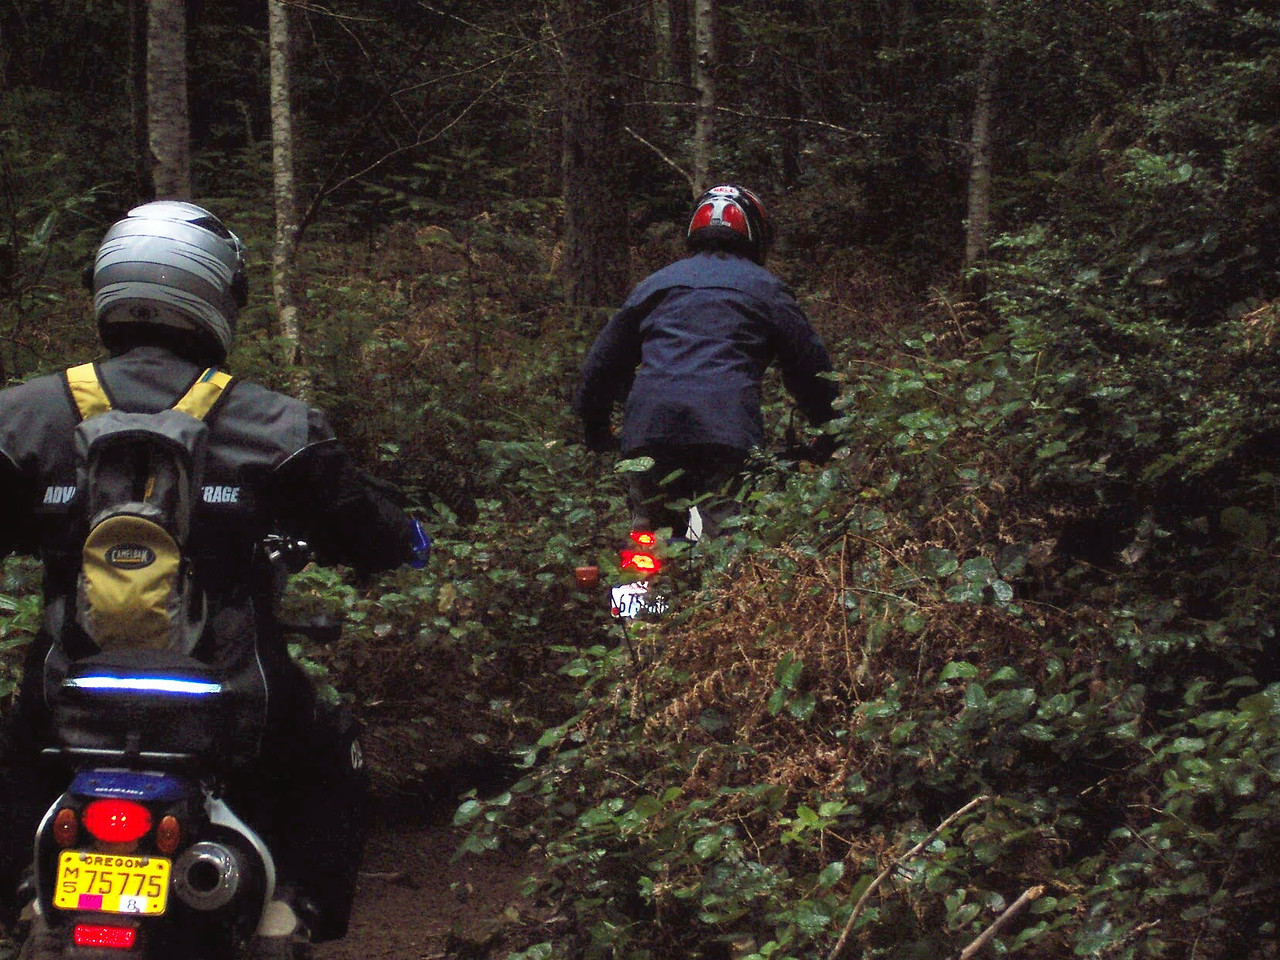 The Tahuya has some great single track trail riding. The ancient glacial sediments of rock and sand make it an ideal off road riding area.